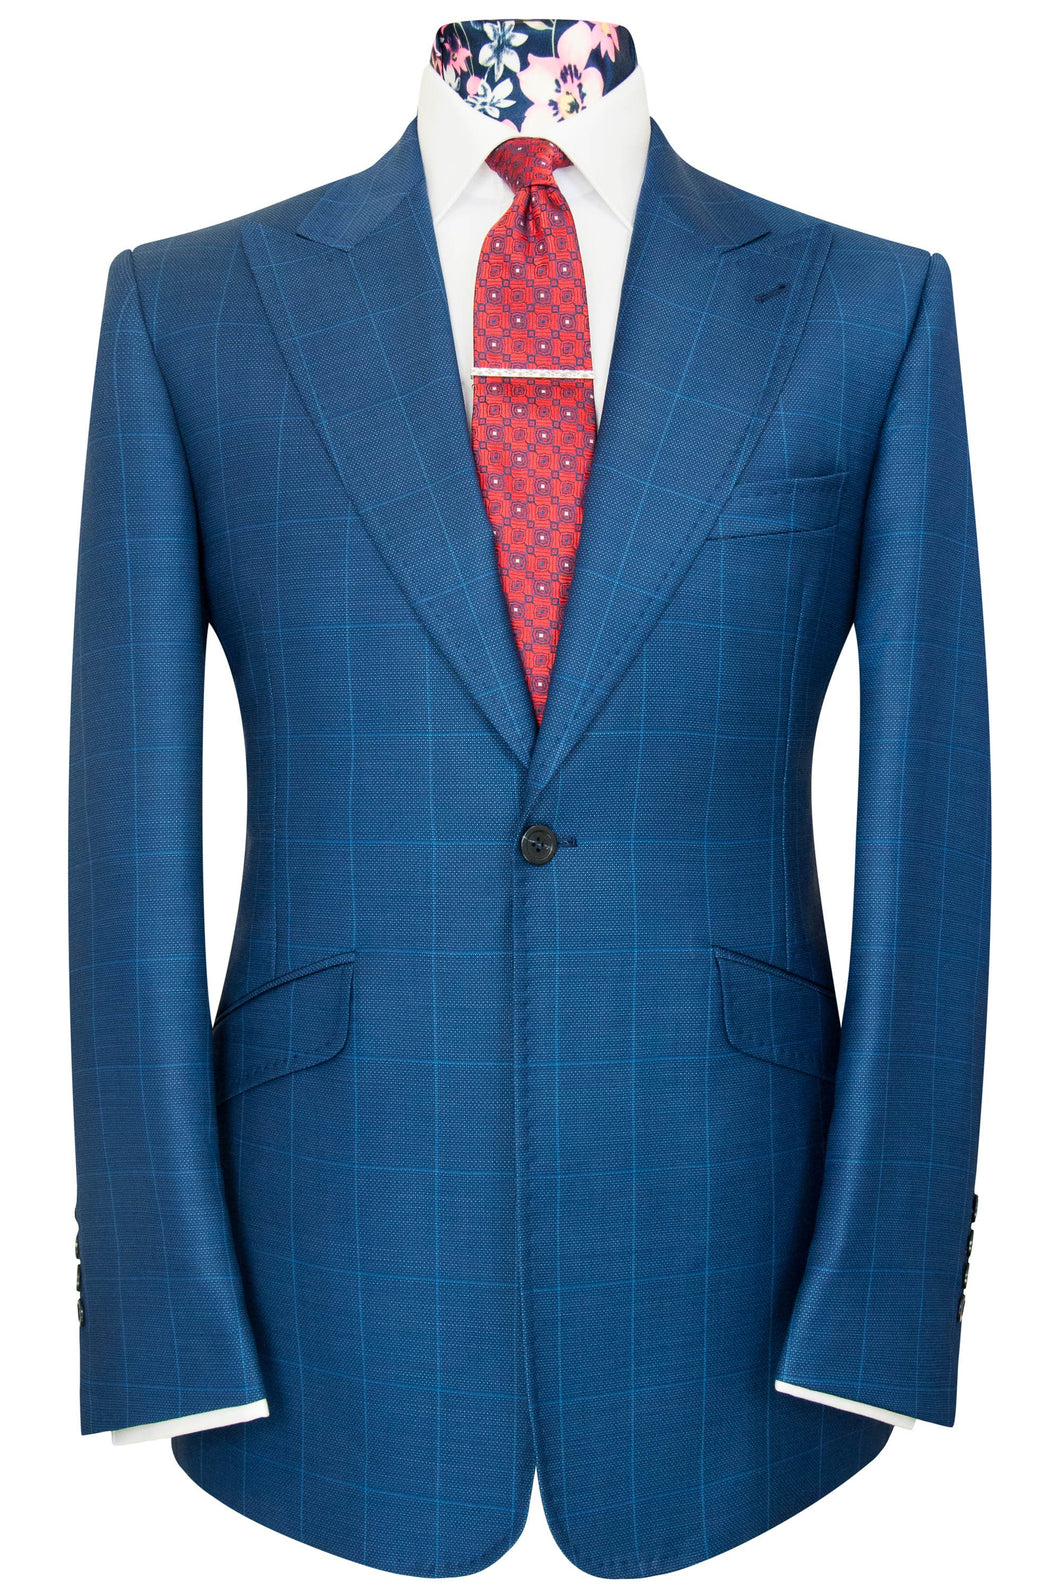 William Hunt Savile Row Cobalt blue two piece windowpane check suit